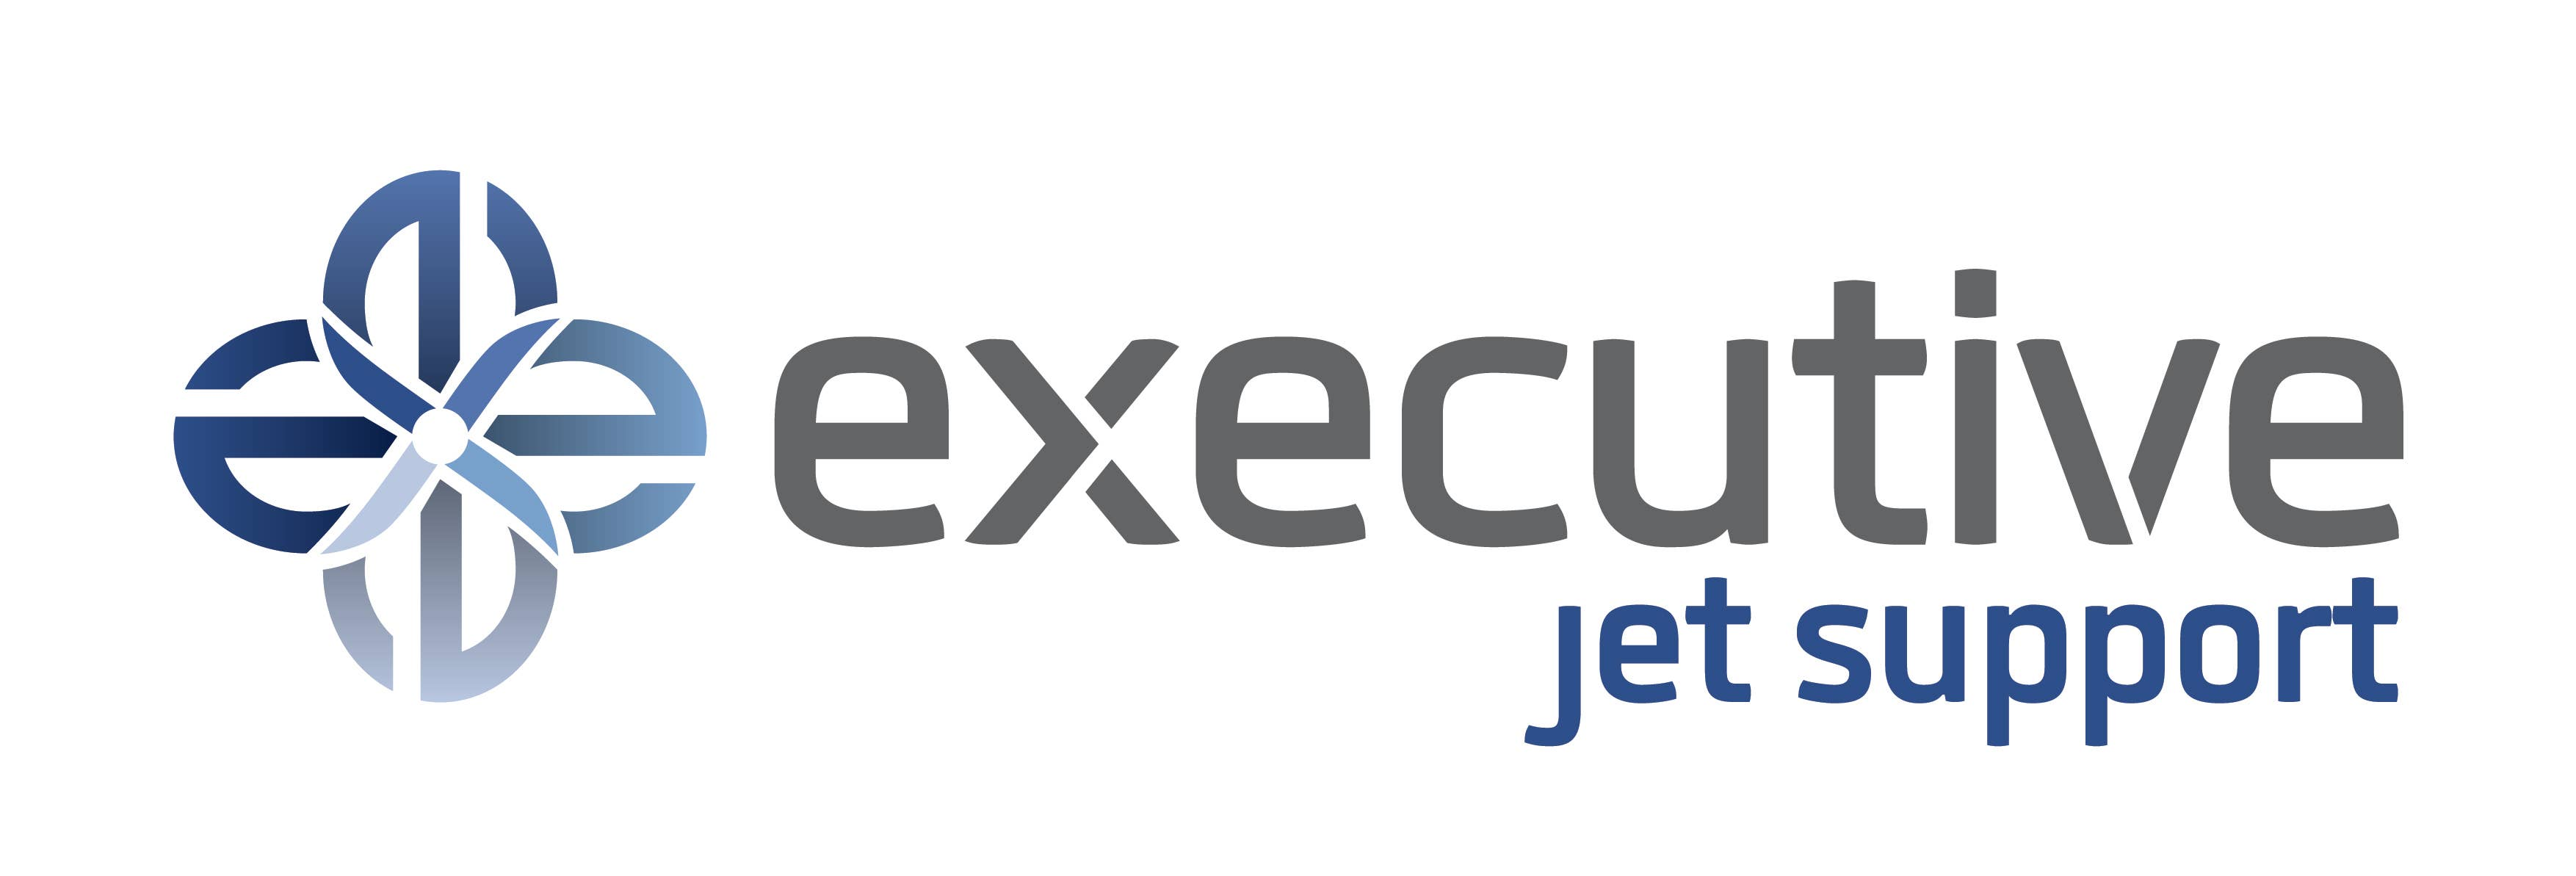 EXECUTIVE JET SUPPORT LTD